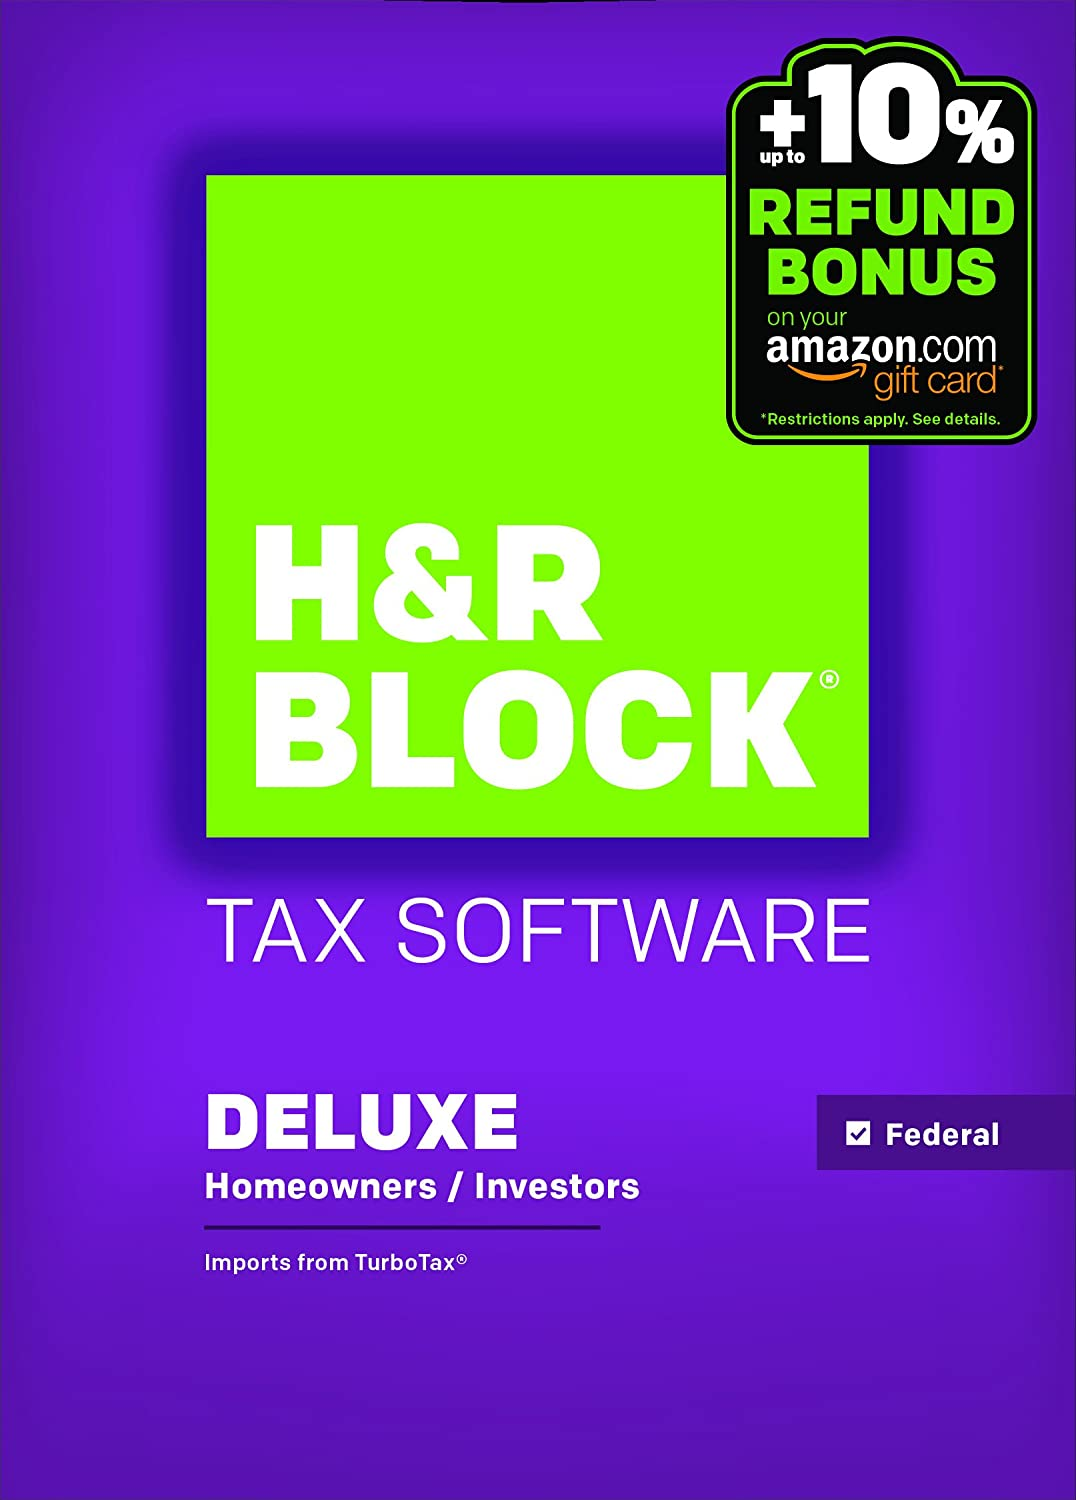 H&R Block 2015 Deluxe Tax Software + Refund Bonus Offer - Windows Download